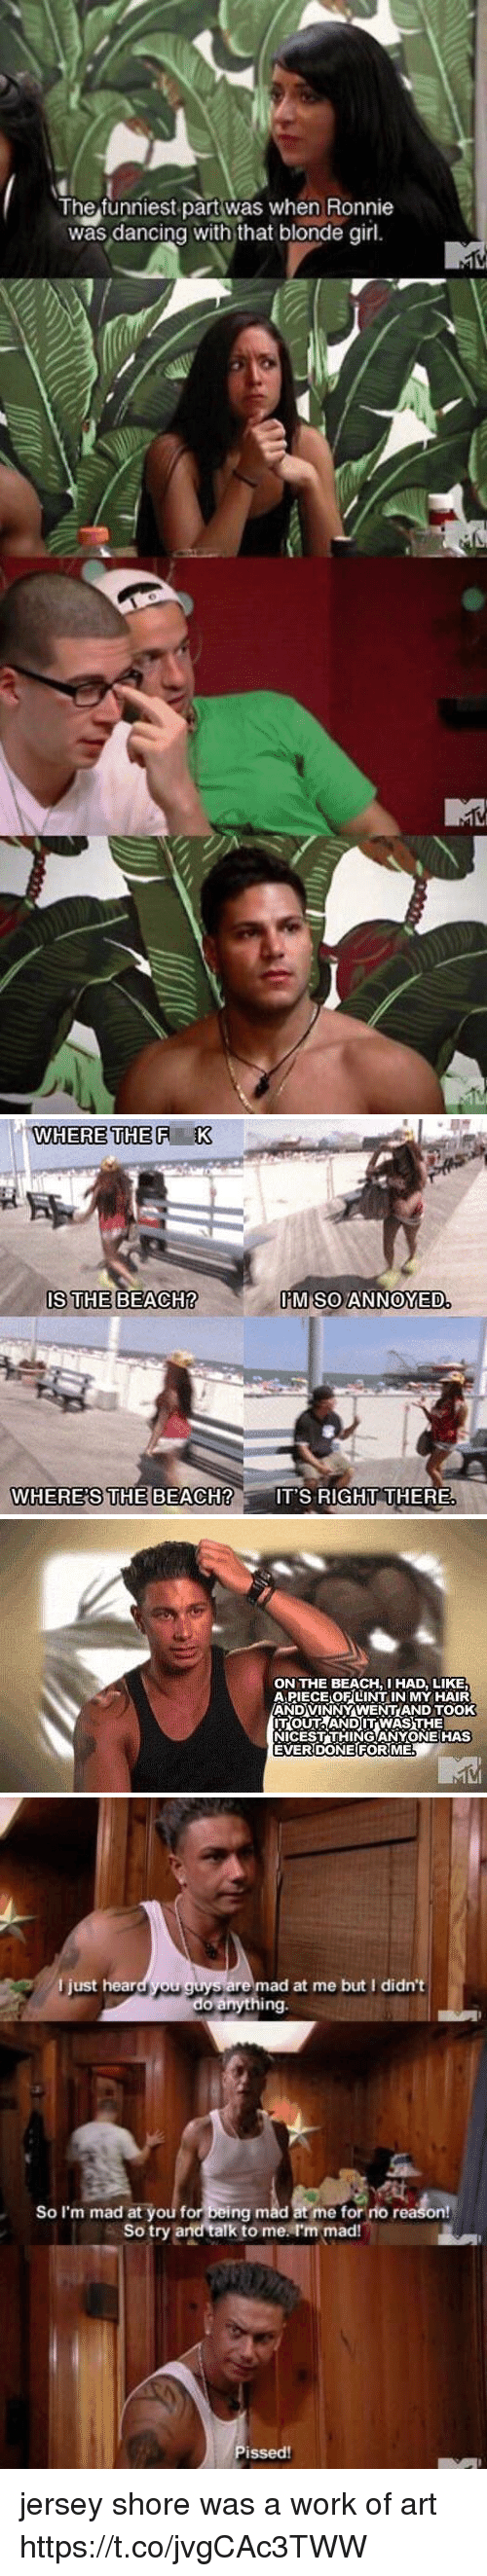 blonde girl: The funniest part was when Honnie  was dancing with that blonde girl.   WHERE THE F  IS THE BEACH?  IM SO ANNOYED  WHERES THE BEACH?  IT'S RIGHT THERE   ONTHE BEACH, I HAD, LIKE  APIECEOF LINT IN MY HAIR  ANDVINNYAVVENTAND TOOK  ITOUTTAANDITWASUHE  NICEST THINGANYONE HAS  EVER DONE FOR ME   I ust hear  ou guys are mad at me but didn't  o anything.  So I'm mad at you for being mad at me for no reason!  So try and talk to me, I'm mad!  Pissed! jersey shore was a work of art https://t.co/jvgCAc3TWW